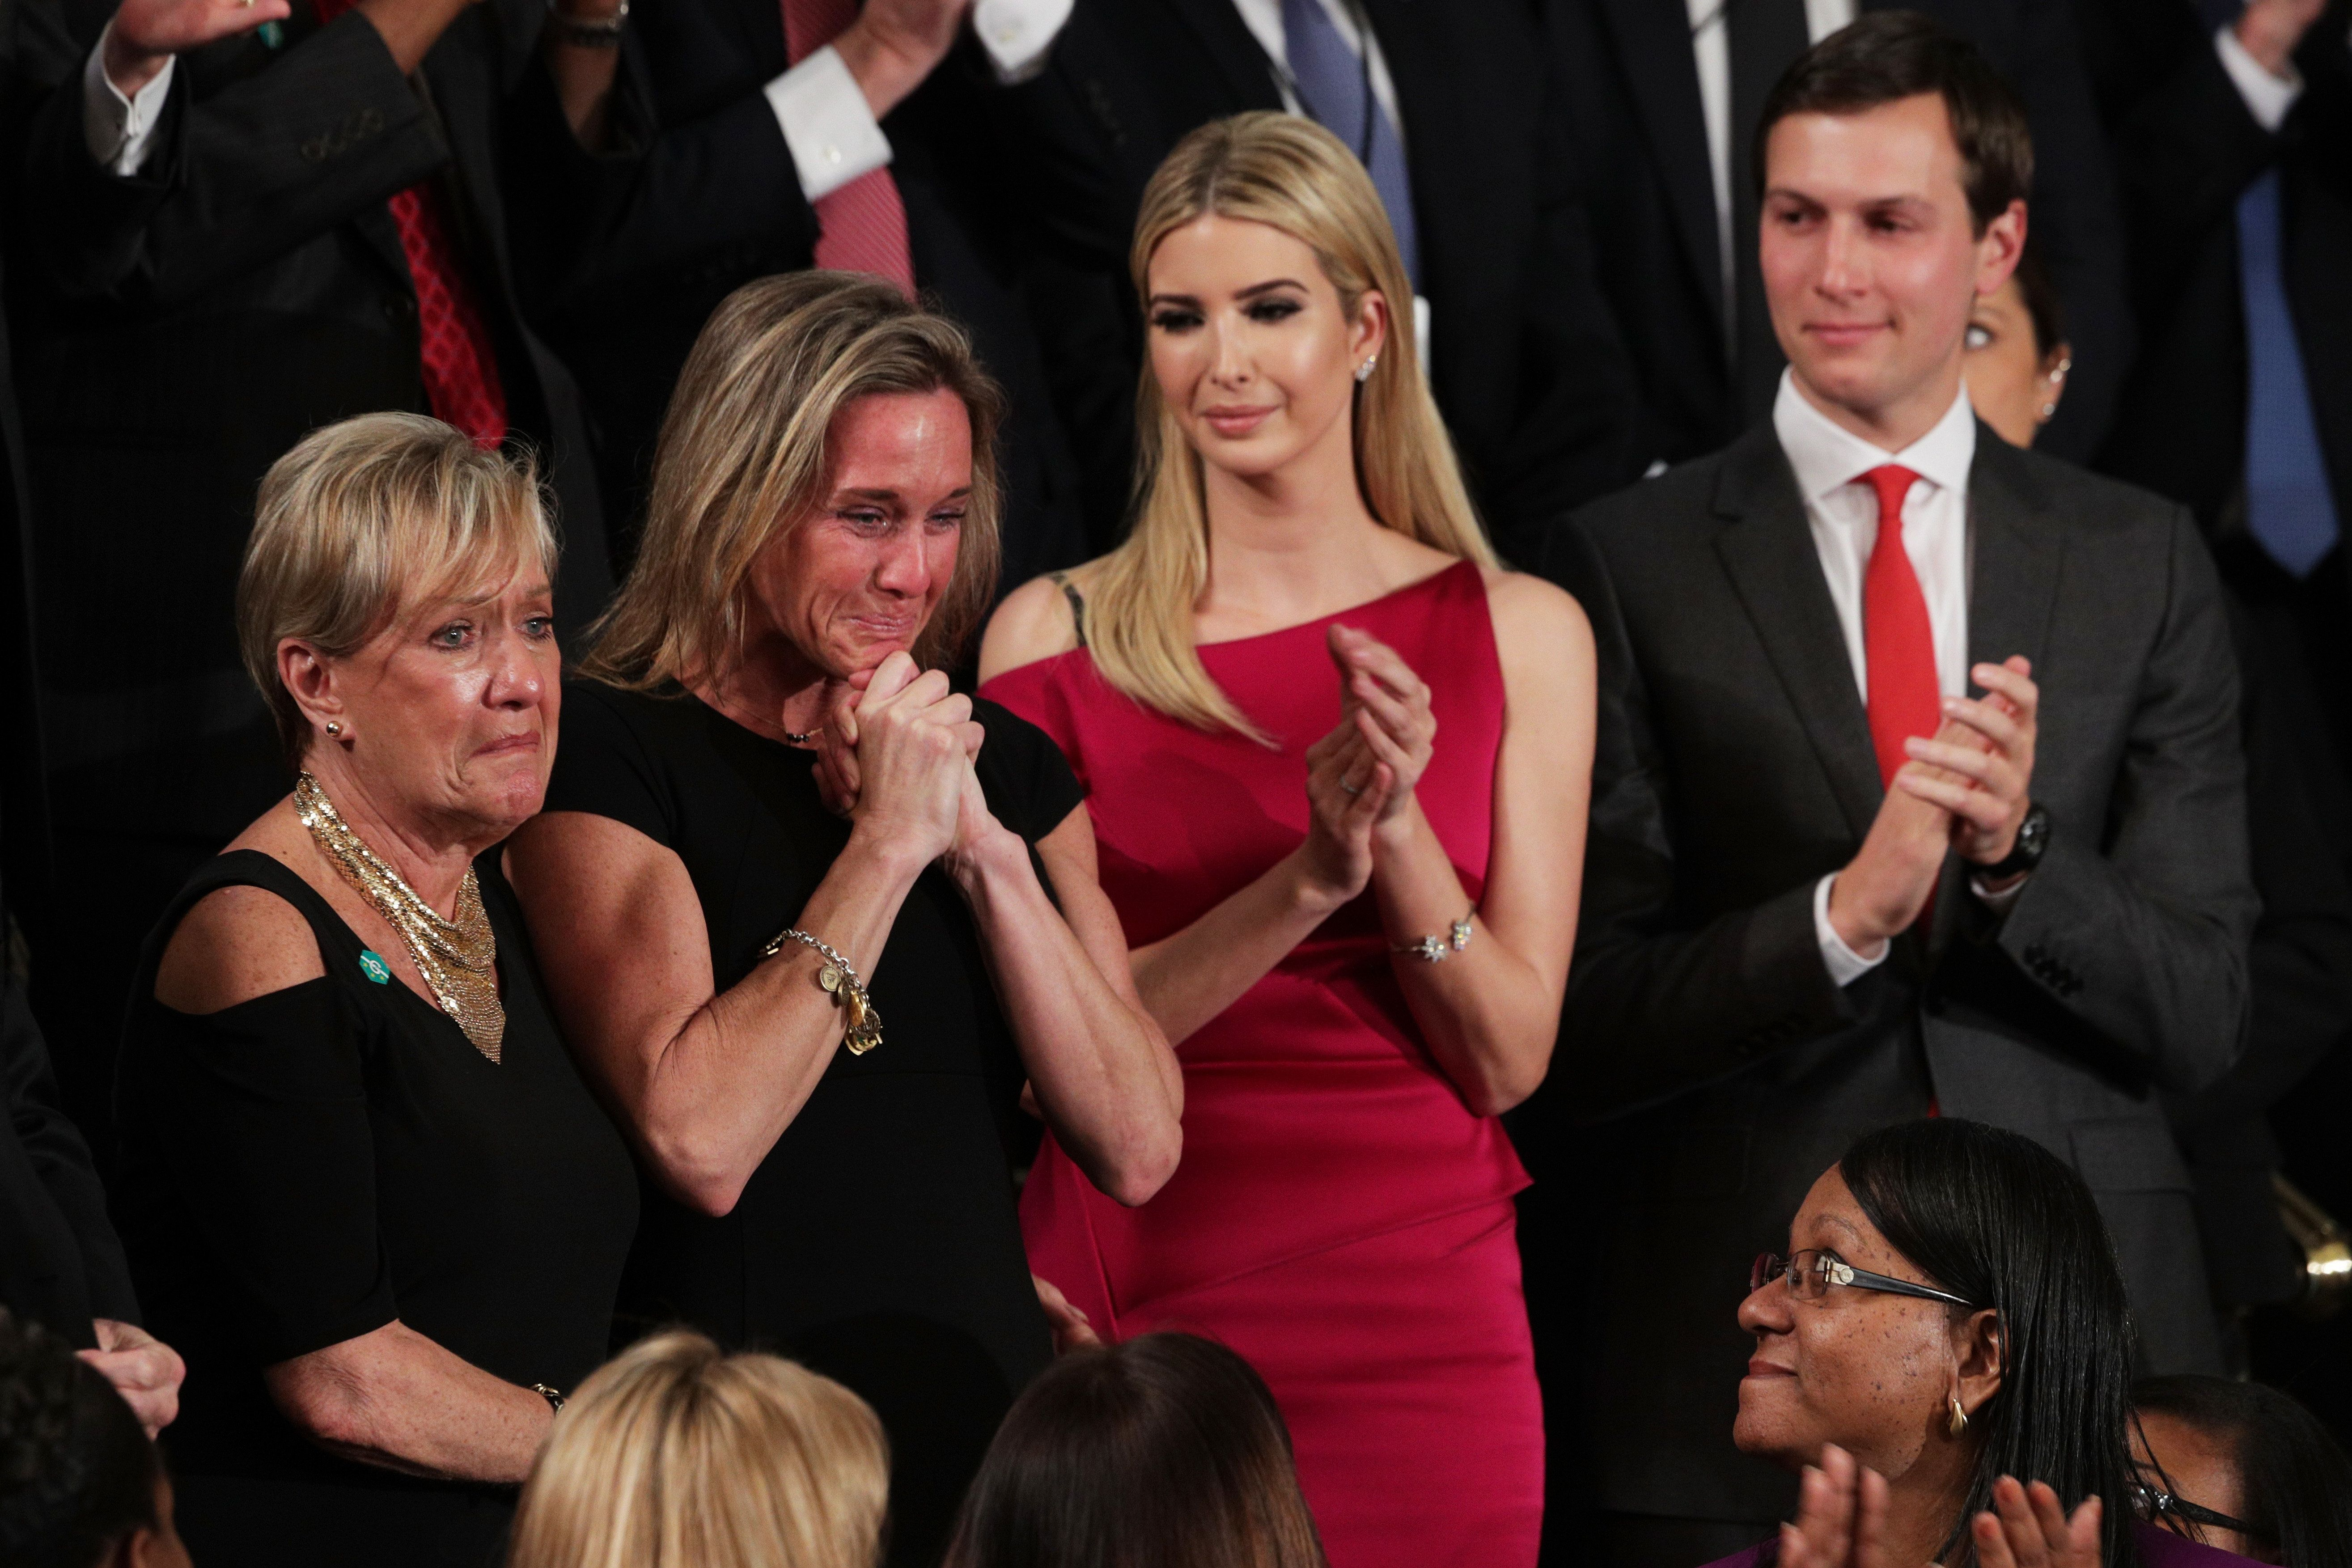 WASHINGTON, DC - FEBRUARY 28:  Widow of Fallen Navy Seal, Senior Chief William Owens, Carryn Owens (2ndL), first lady Melania Trump and White House Senior Advisor to the President for Strategic Planning Jared Kushner attend a joint session of the U.S. Congress with U.S. President Donald Trump on February 28, 2017 in the House chamber of  the U.S. Capitol in Washington, DC. Trump's first address to Congress focused on national security, tax and regulatory reform, the economy, and healthcare.  (Photo by Alex Wong/Getty Images)